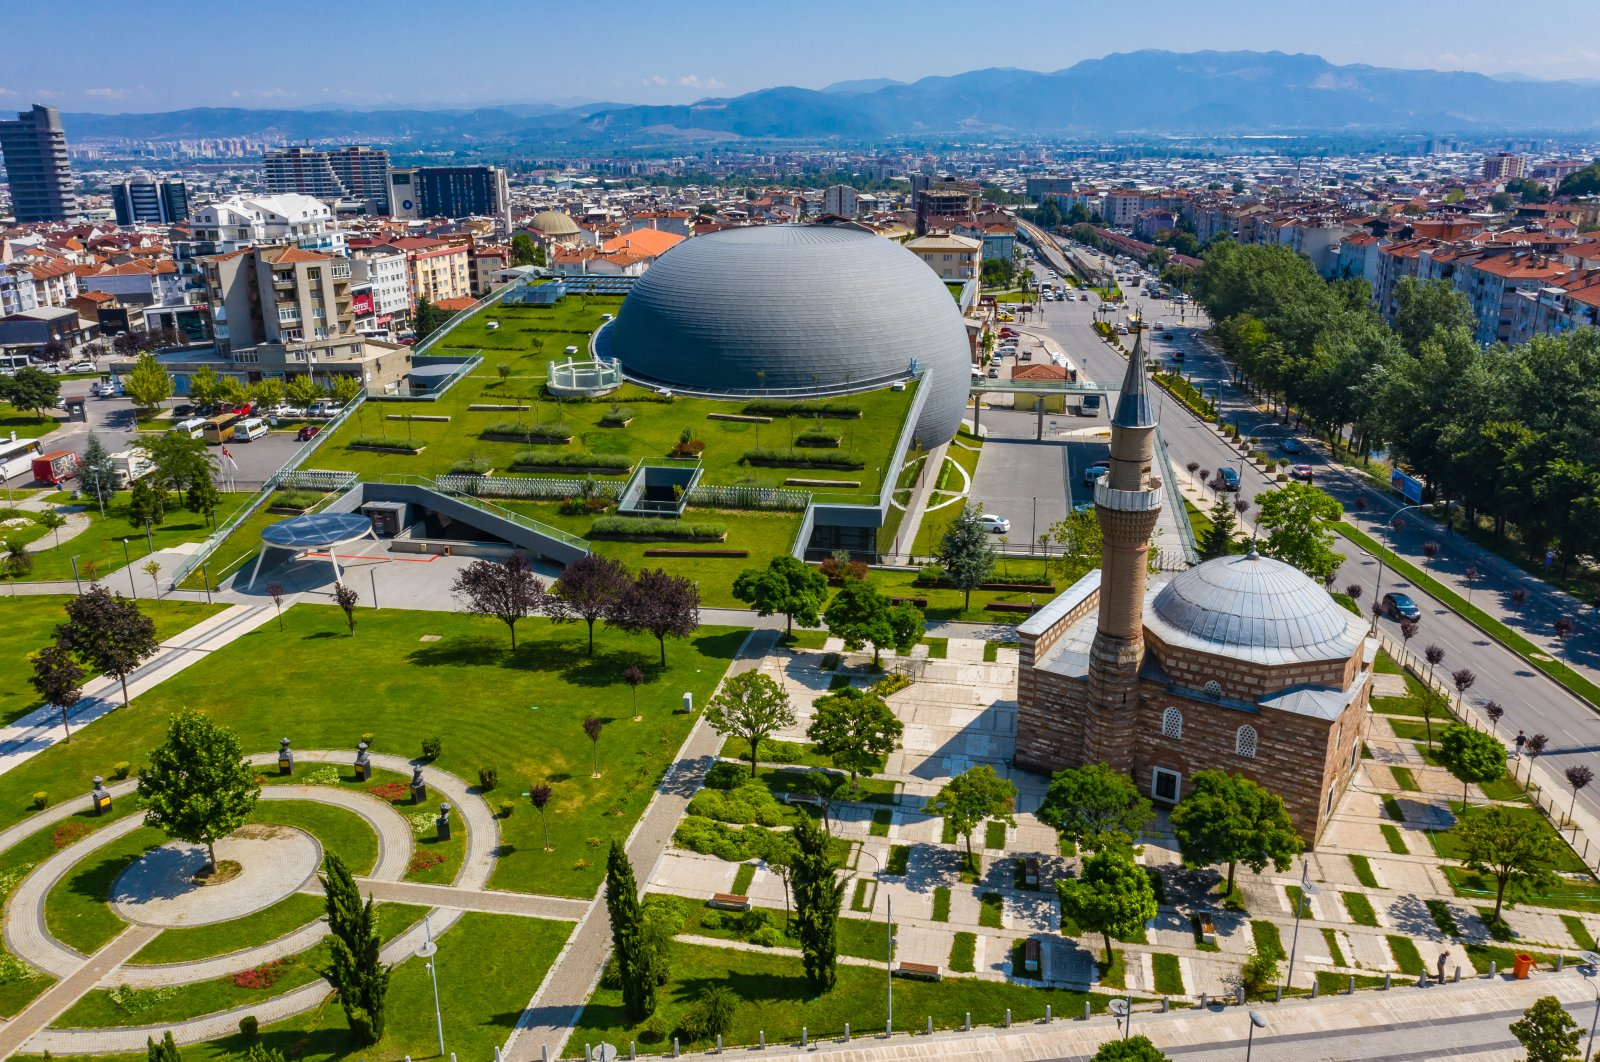 Panorama 1326 Bursa Conquest Museum was constructed in the concept of green building. (AA Photo)